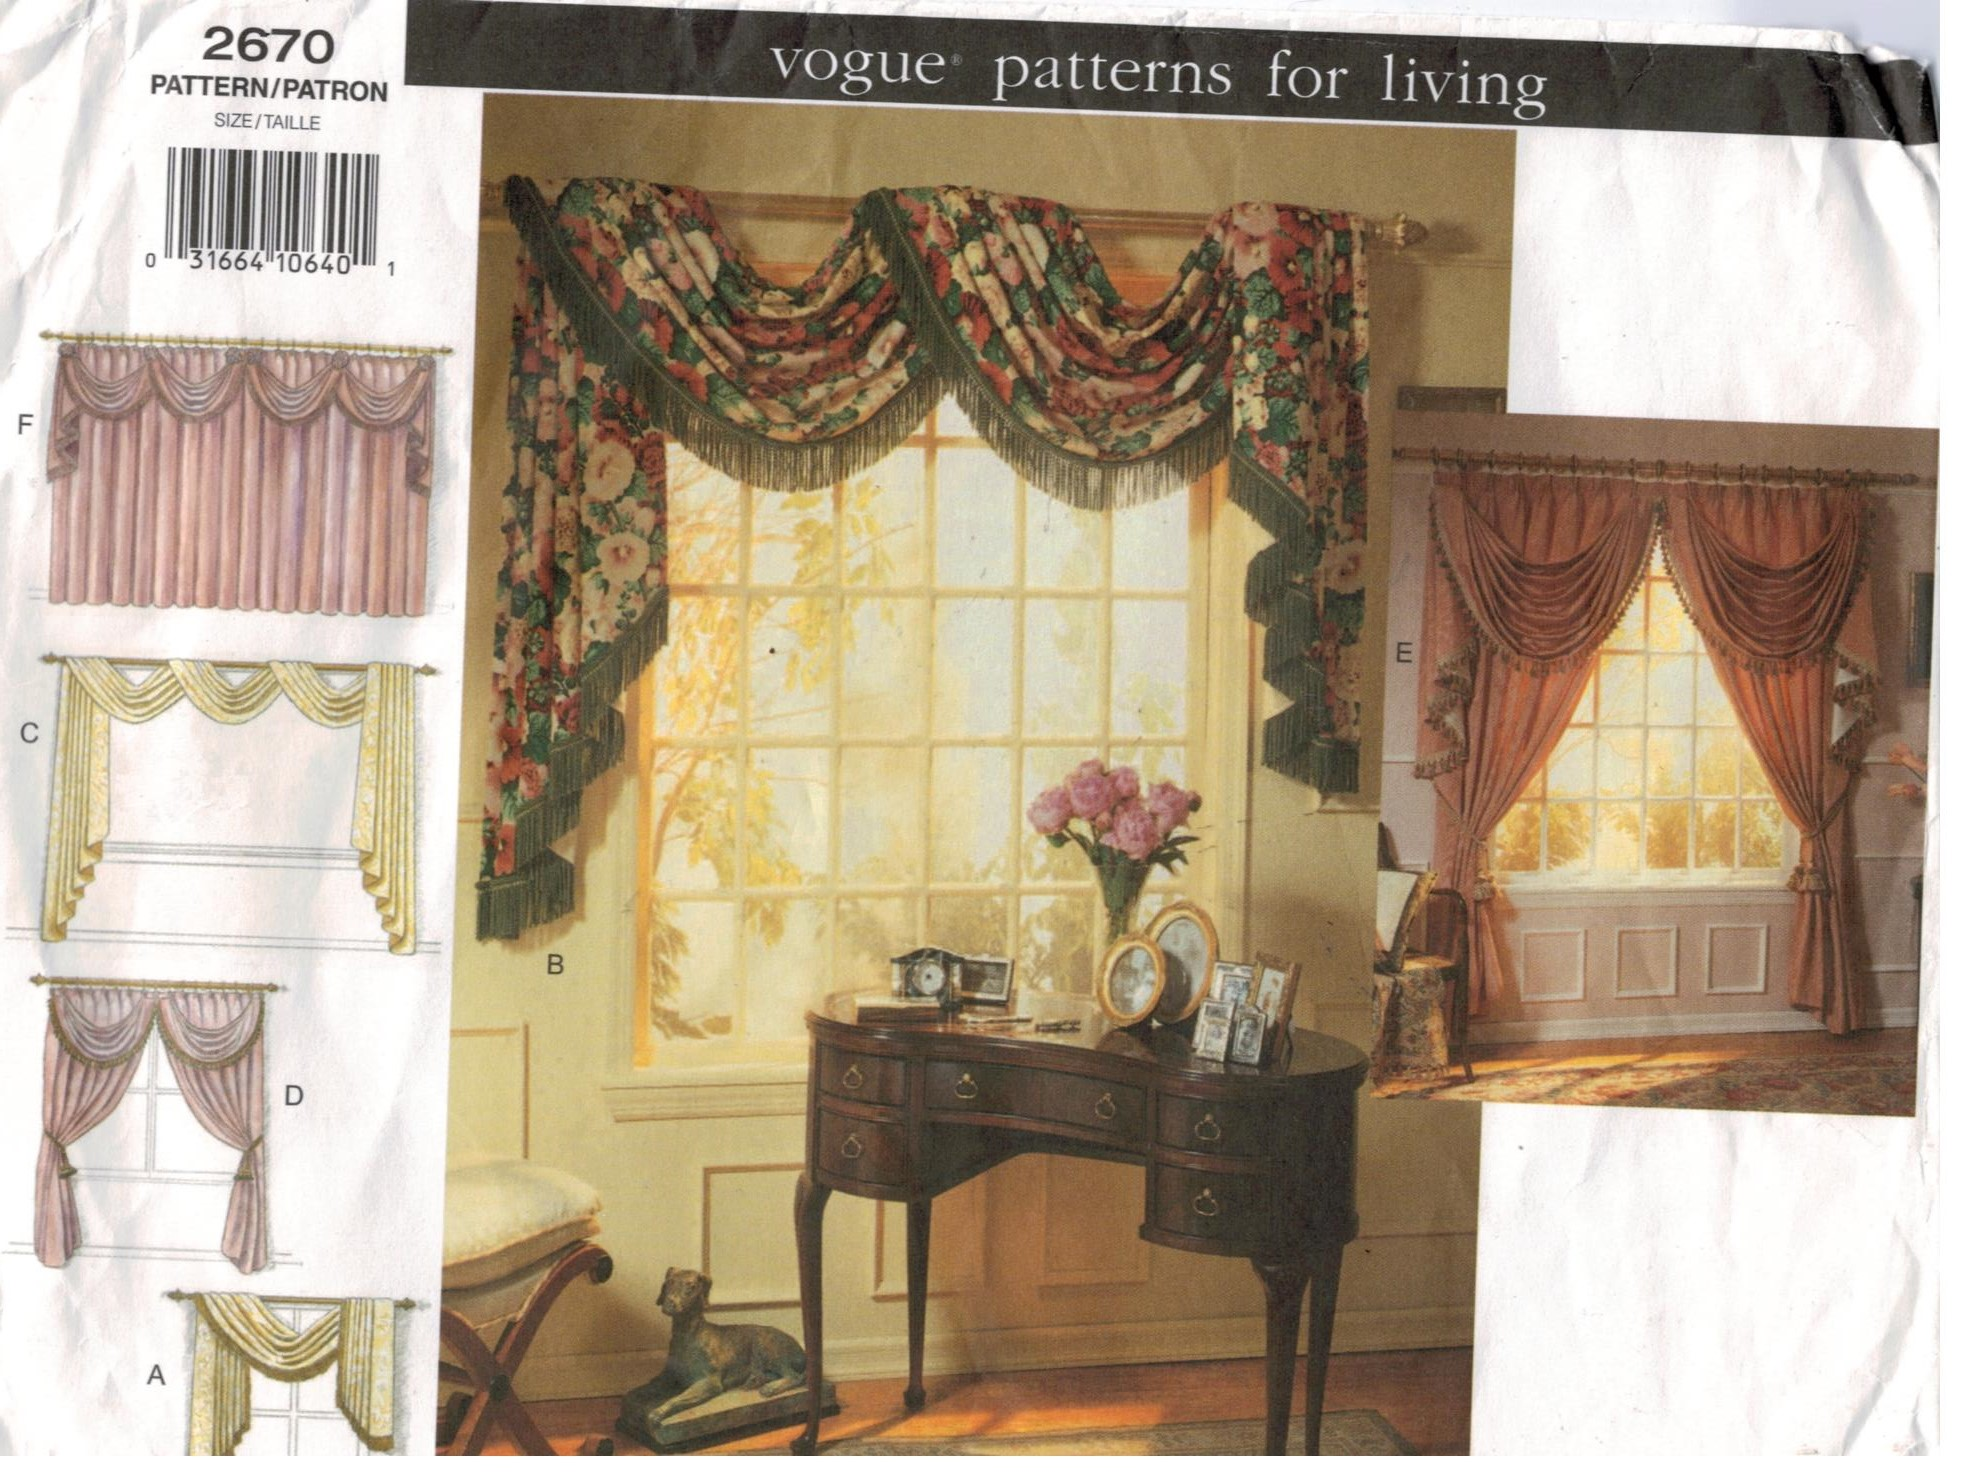 Vogue Pattern 2670 Patterns For Living Swags And Jabot Window Treatment Home Dec Sewing Pattern Heaven